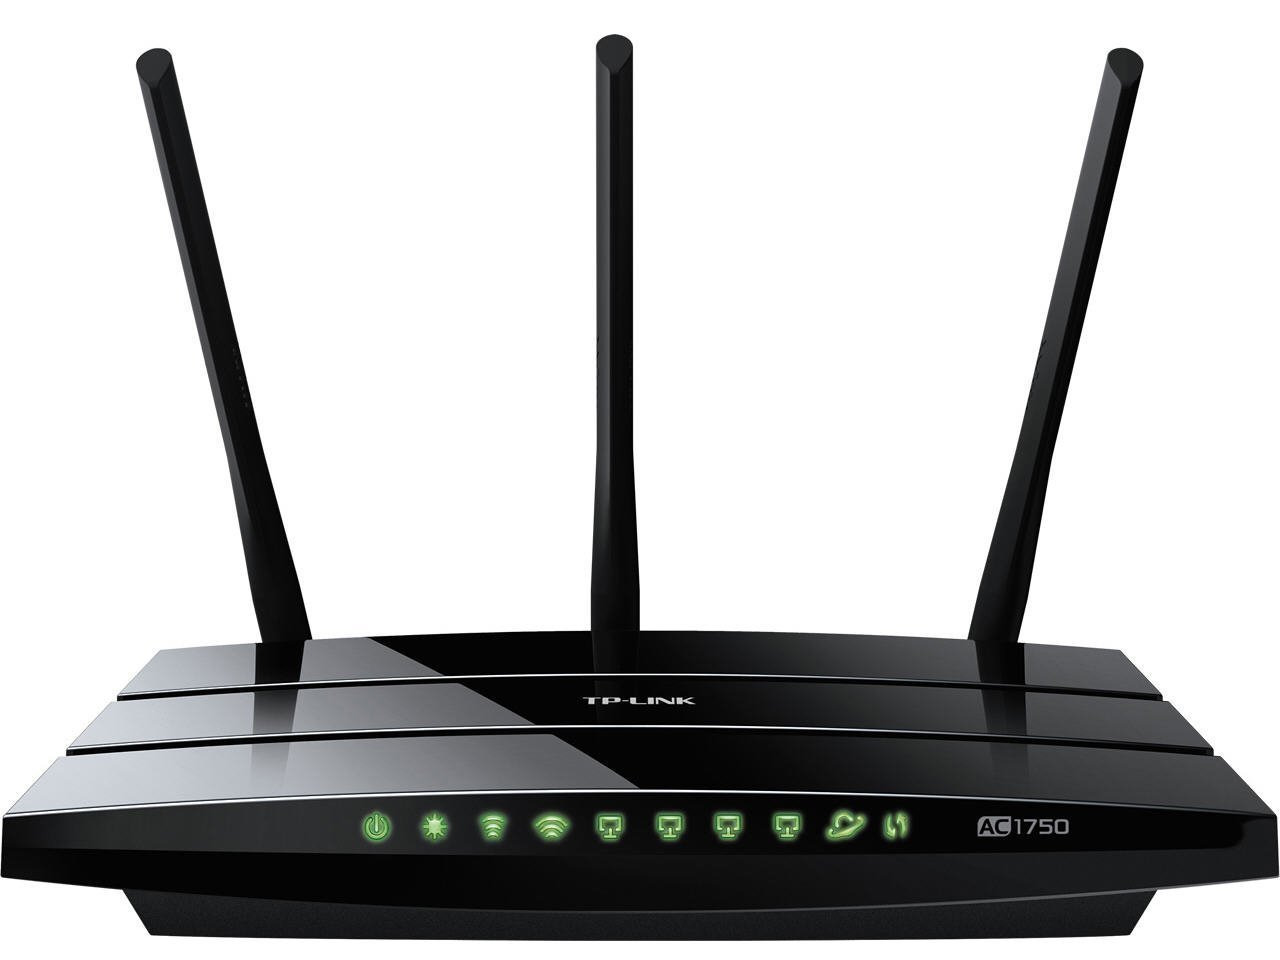 TP-LINK Archer C7 AC1750 Dual Band Wireless AC Gigabit Router, 2.4GHz 450Mbps+5Ghz 1300Mbps, 2 USB Ports